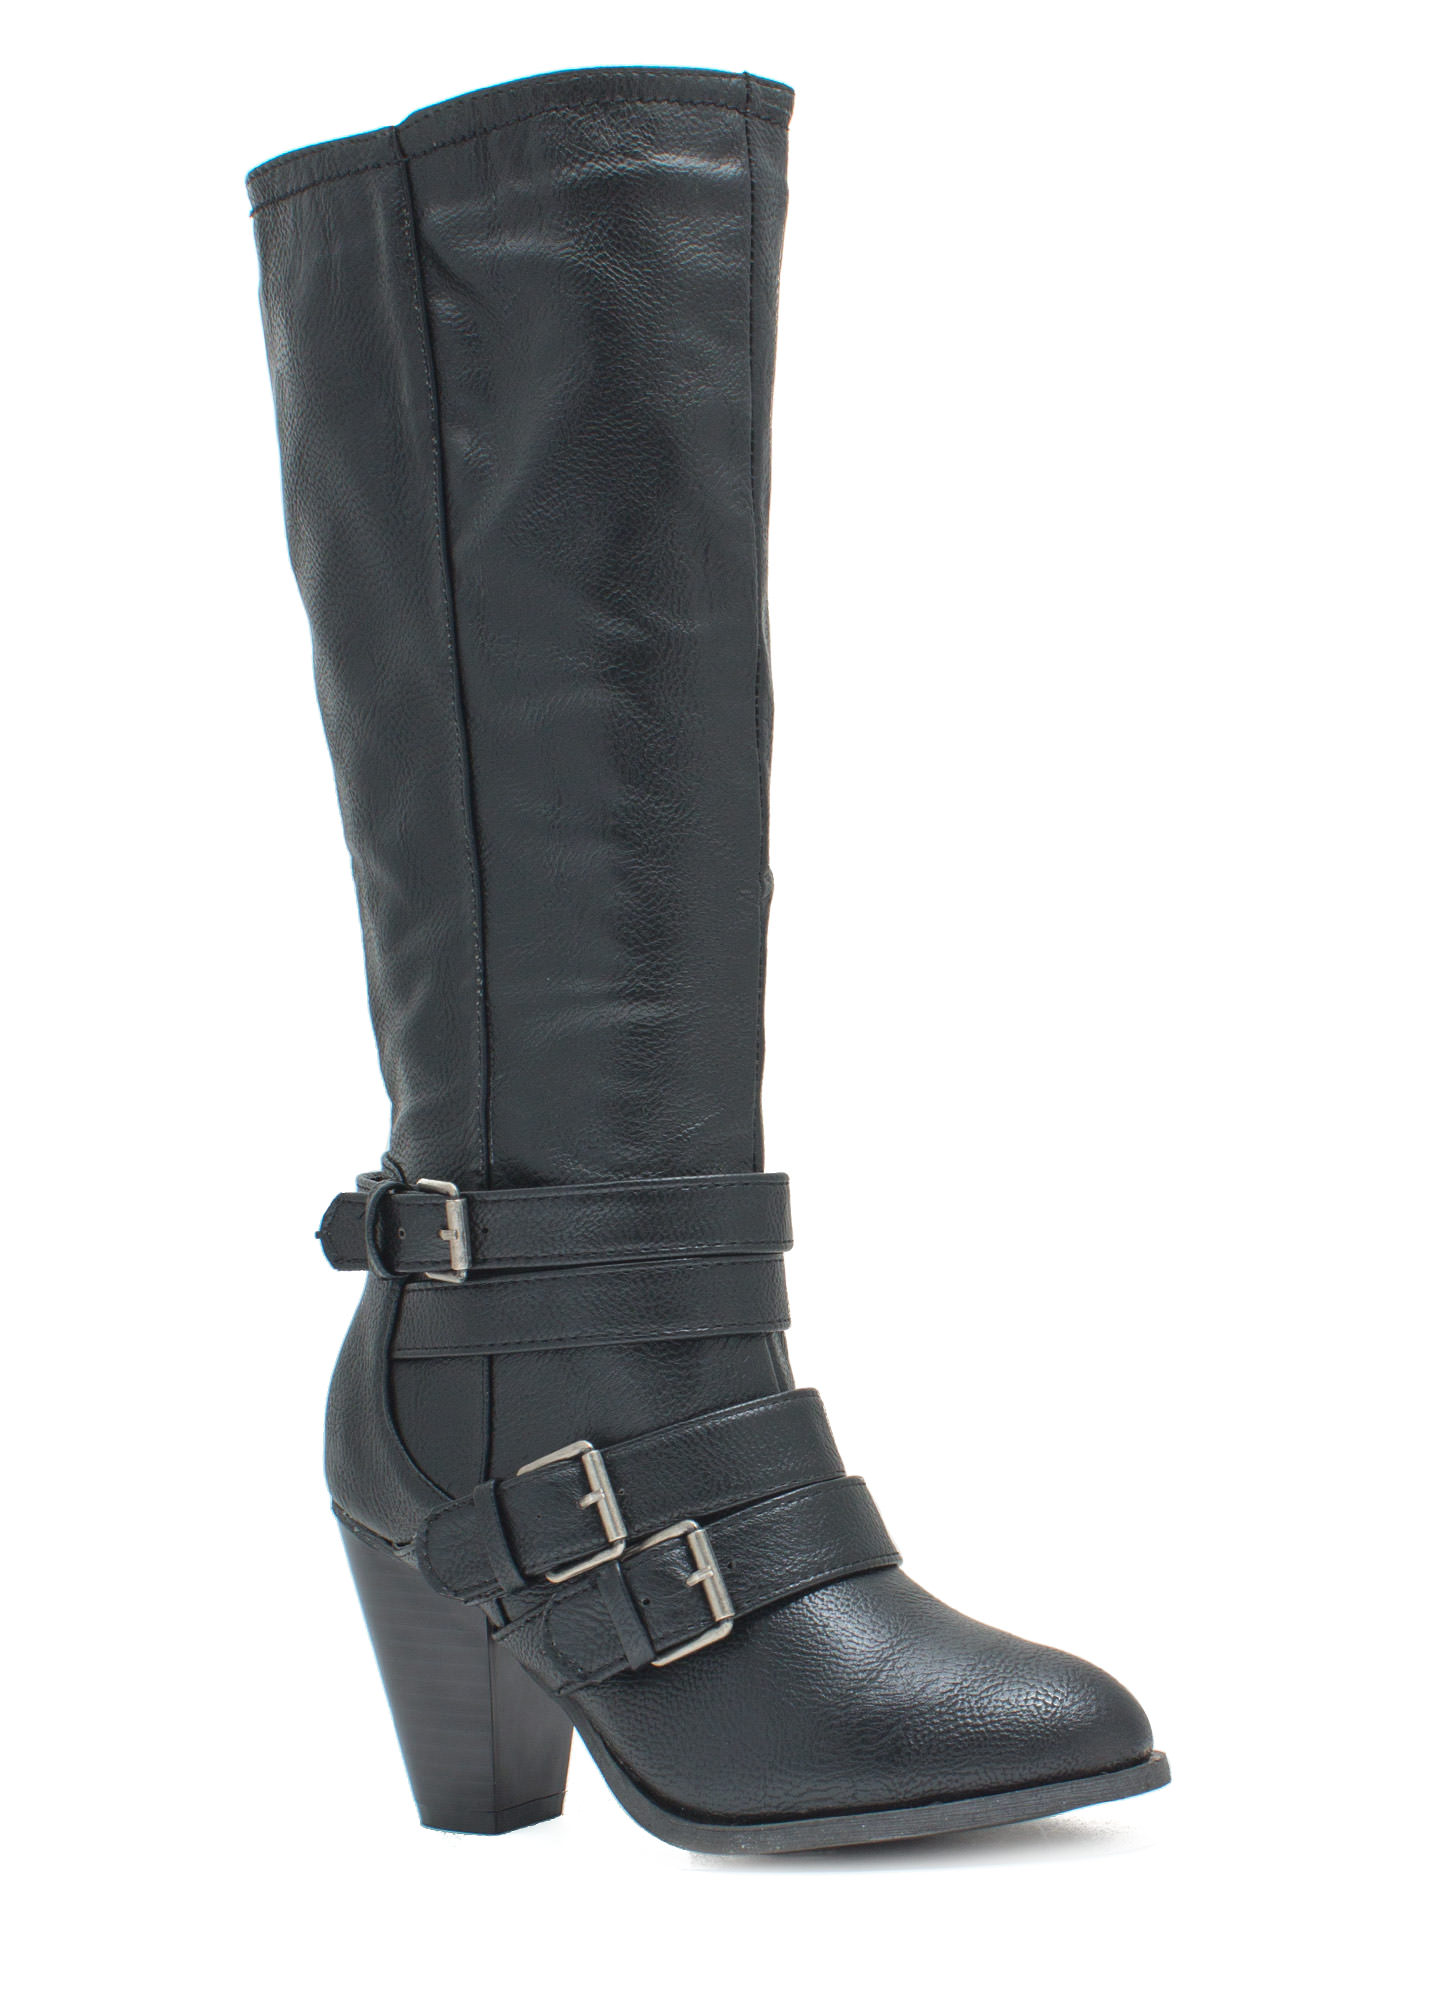 It's A Wrap Heeled Boots BLACK